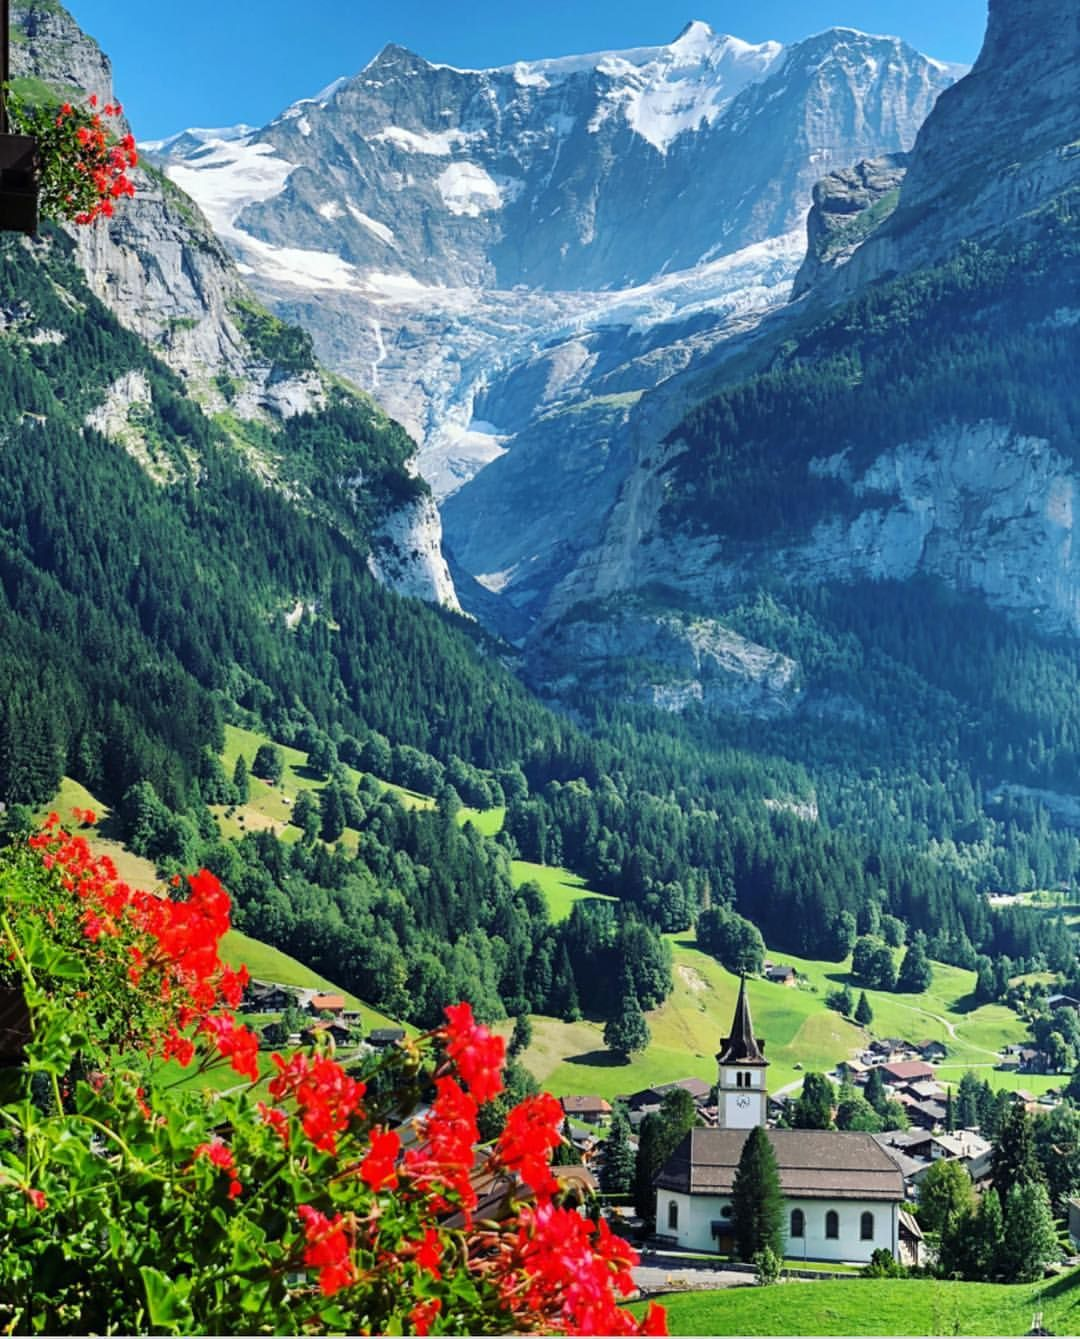 Switzerland Vacations On Instagram Grindelwald Vibes Seen By Maria Je Suis Maria S Beautiful Landscapes Beautiful Nature Nature